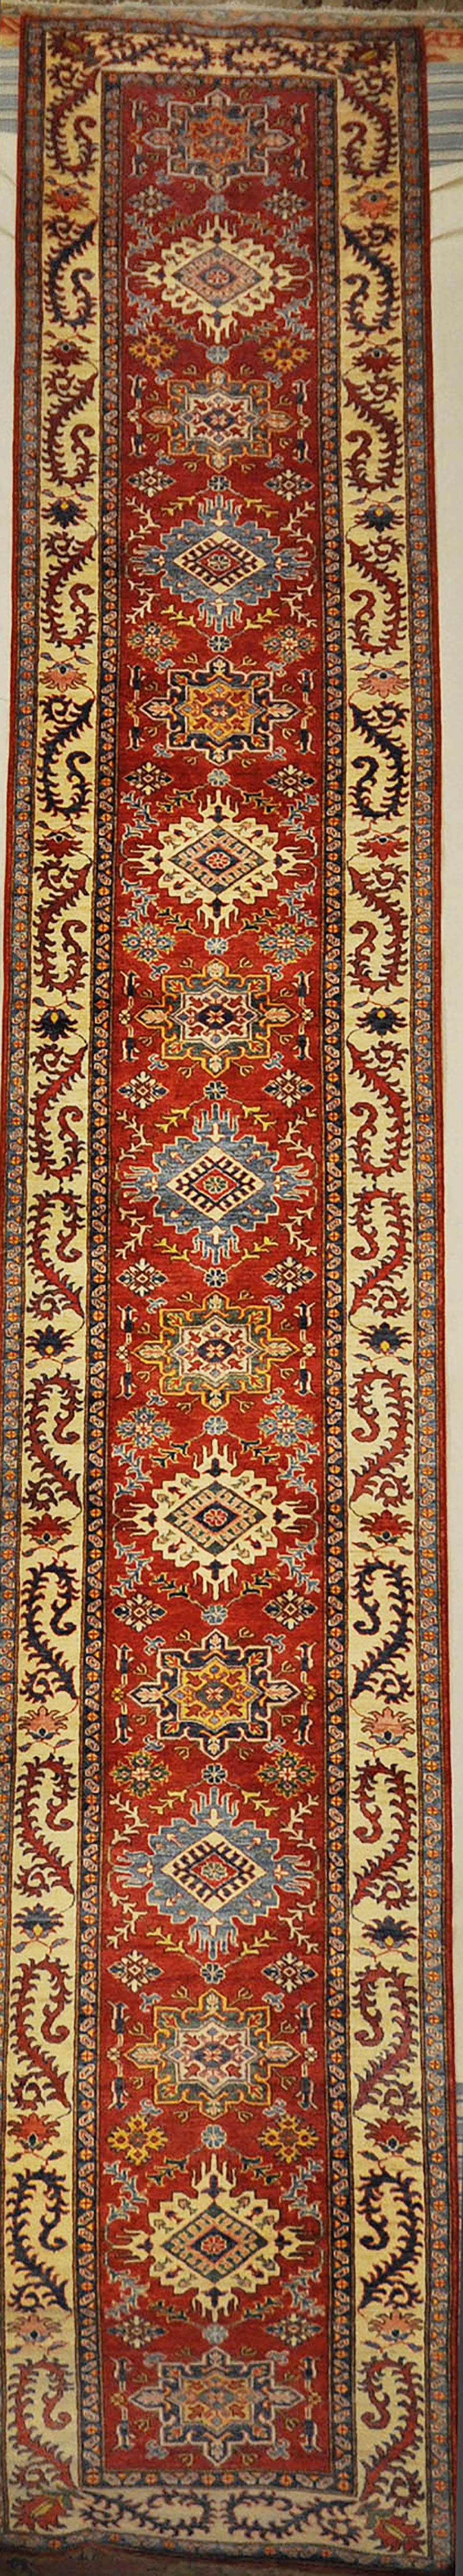 Turkoman Caucasian Rugs and More Oriental Carpets 30999